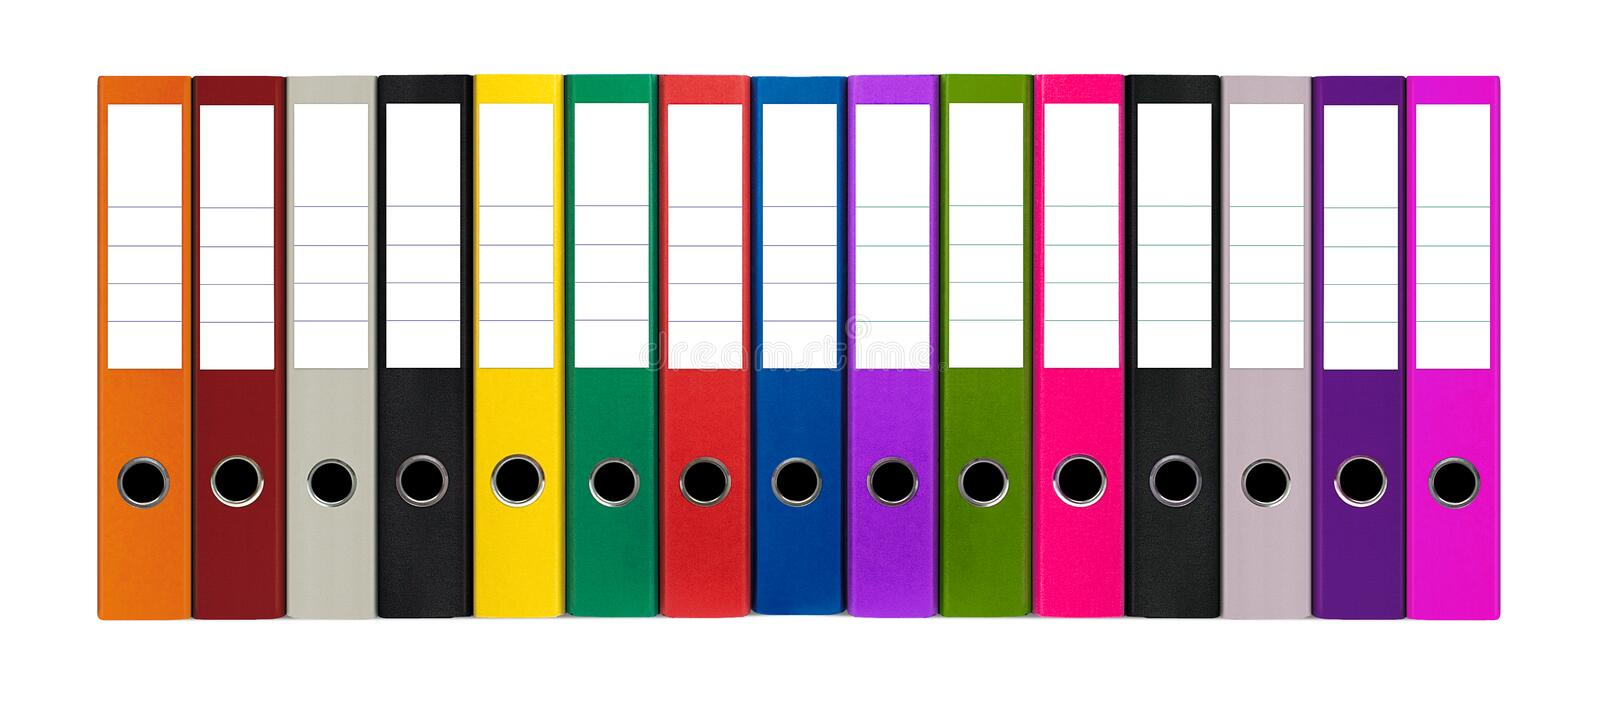 Colorful files. Various colorful files against white background